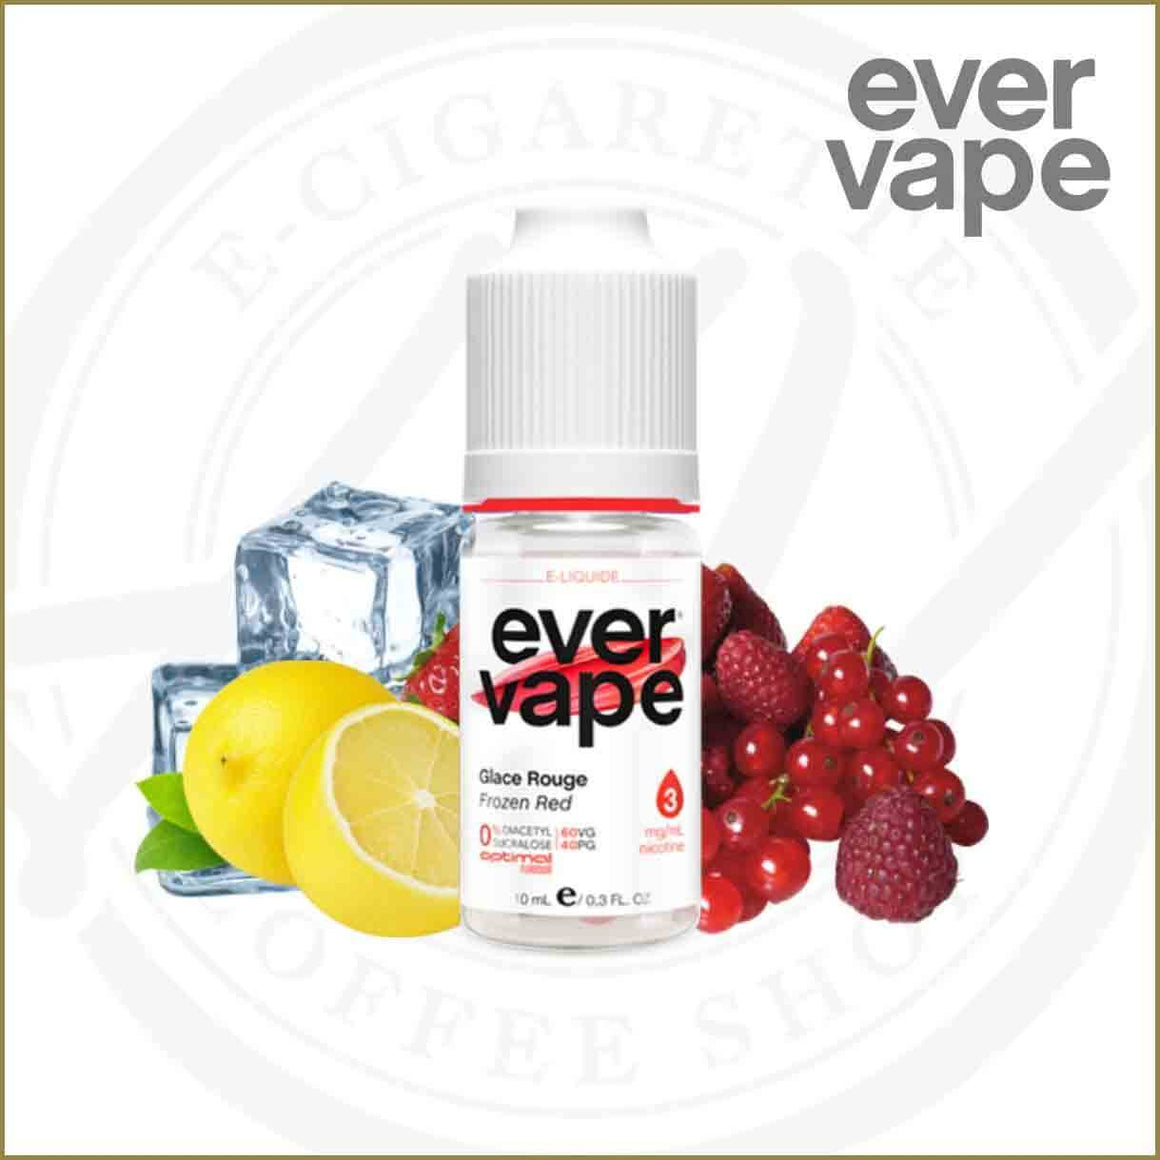 Ever Vape | Glace Rouge